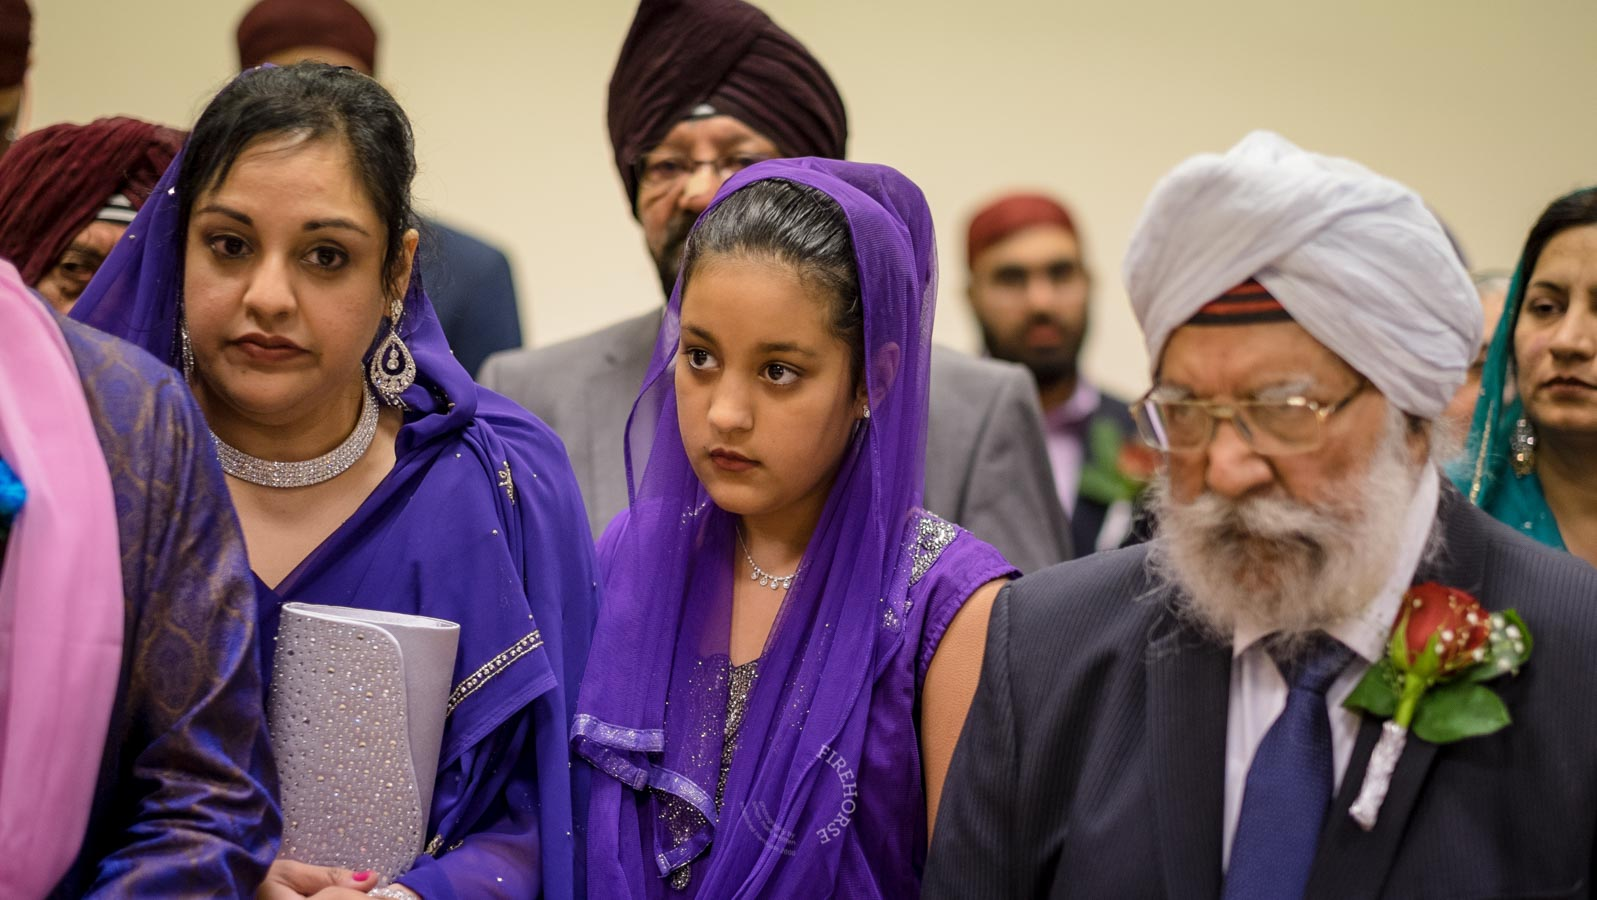 sikh-wedding-photography-025